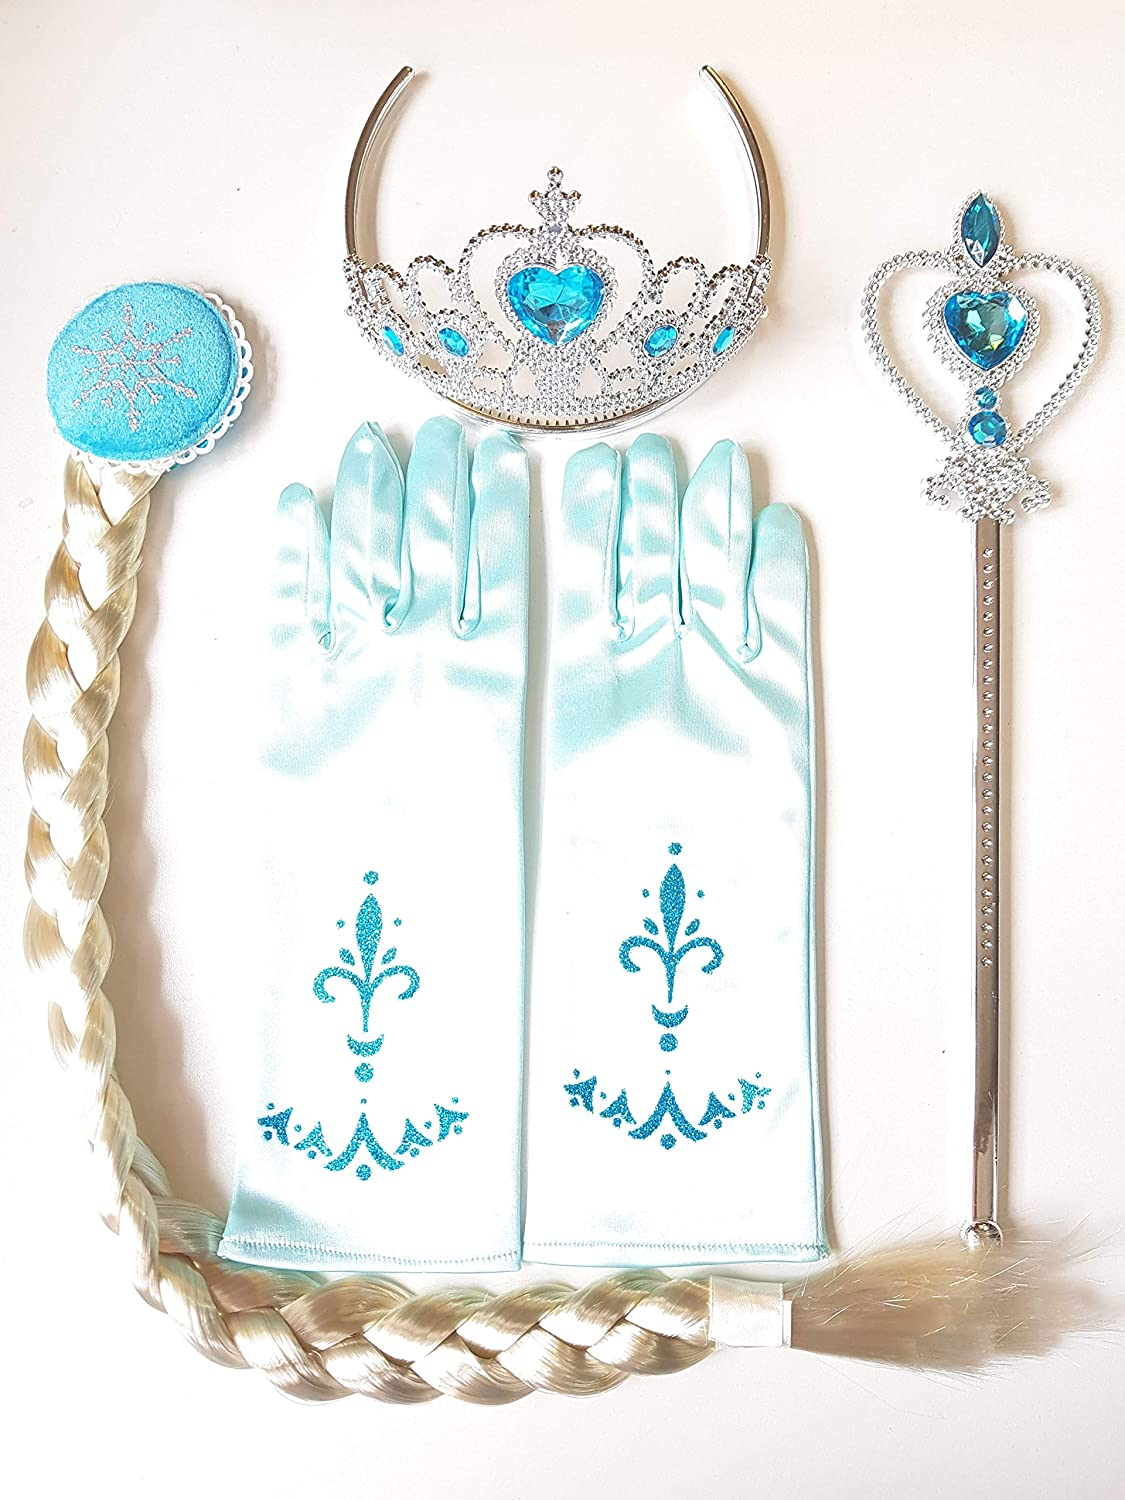 Princess Elsa Dress Up Party Costume Accessories Set